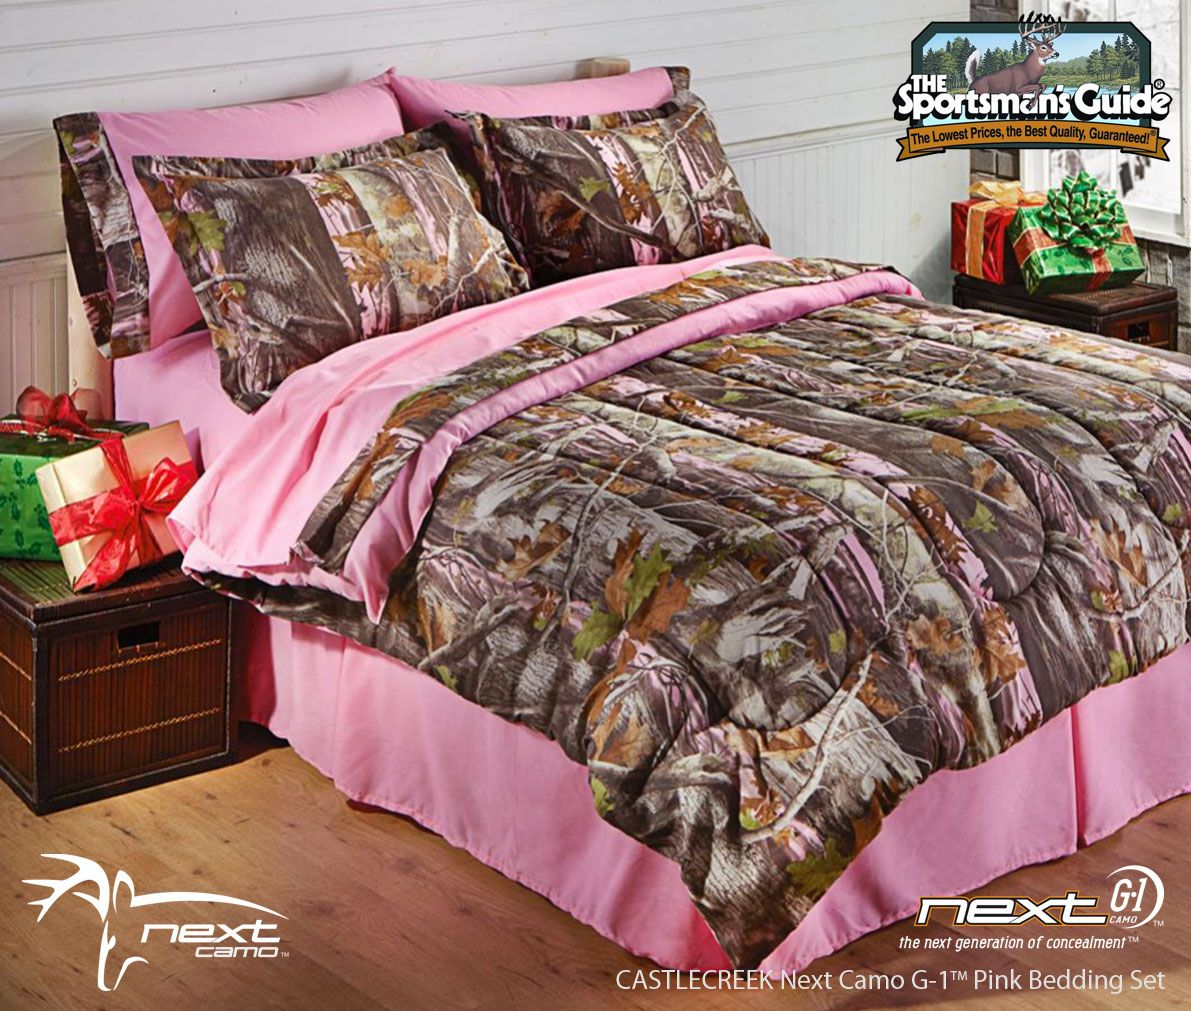 sensational ideas camo bedroom ideas. pink realtree bed  Next Camo Bedding from CastleCreek now available at The Sportsmans